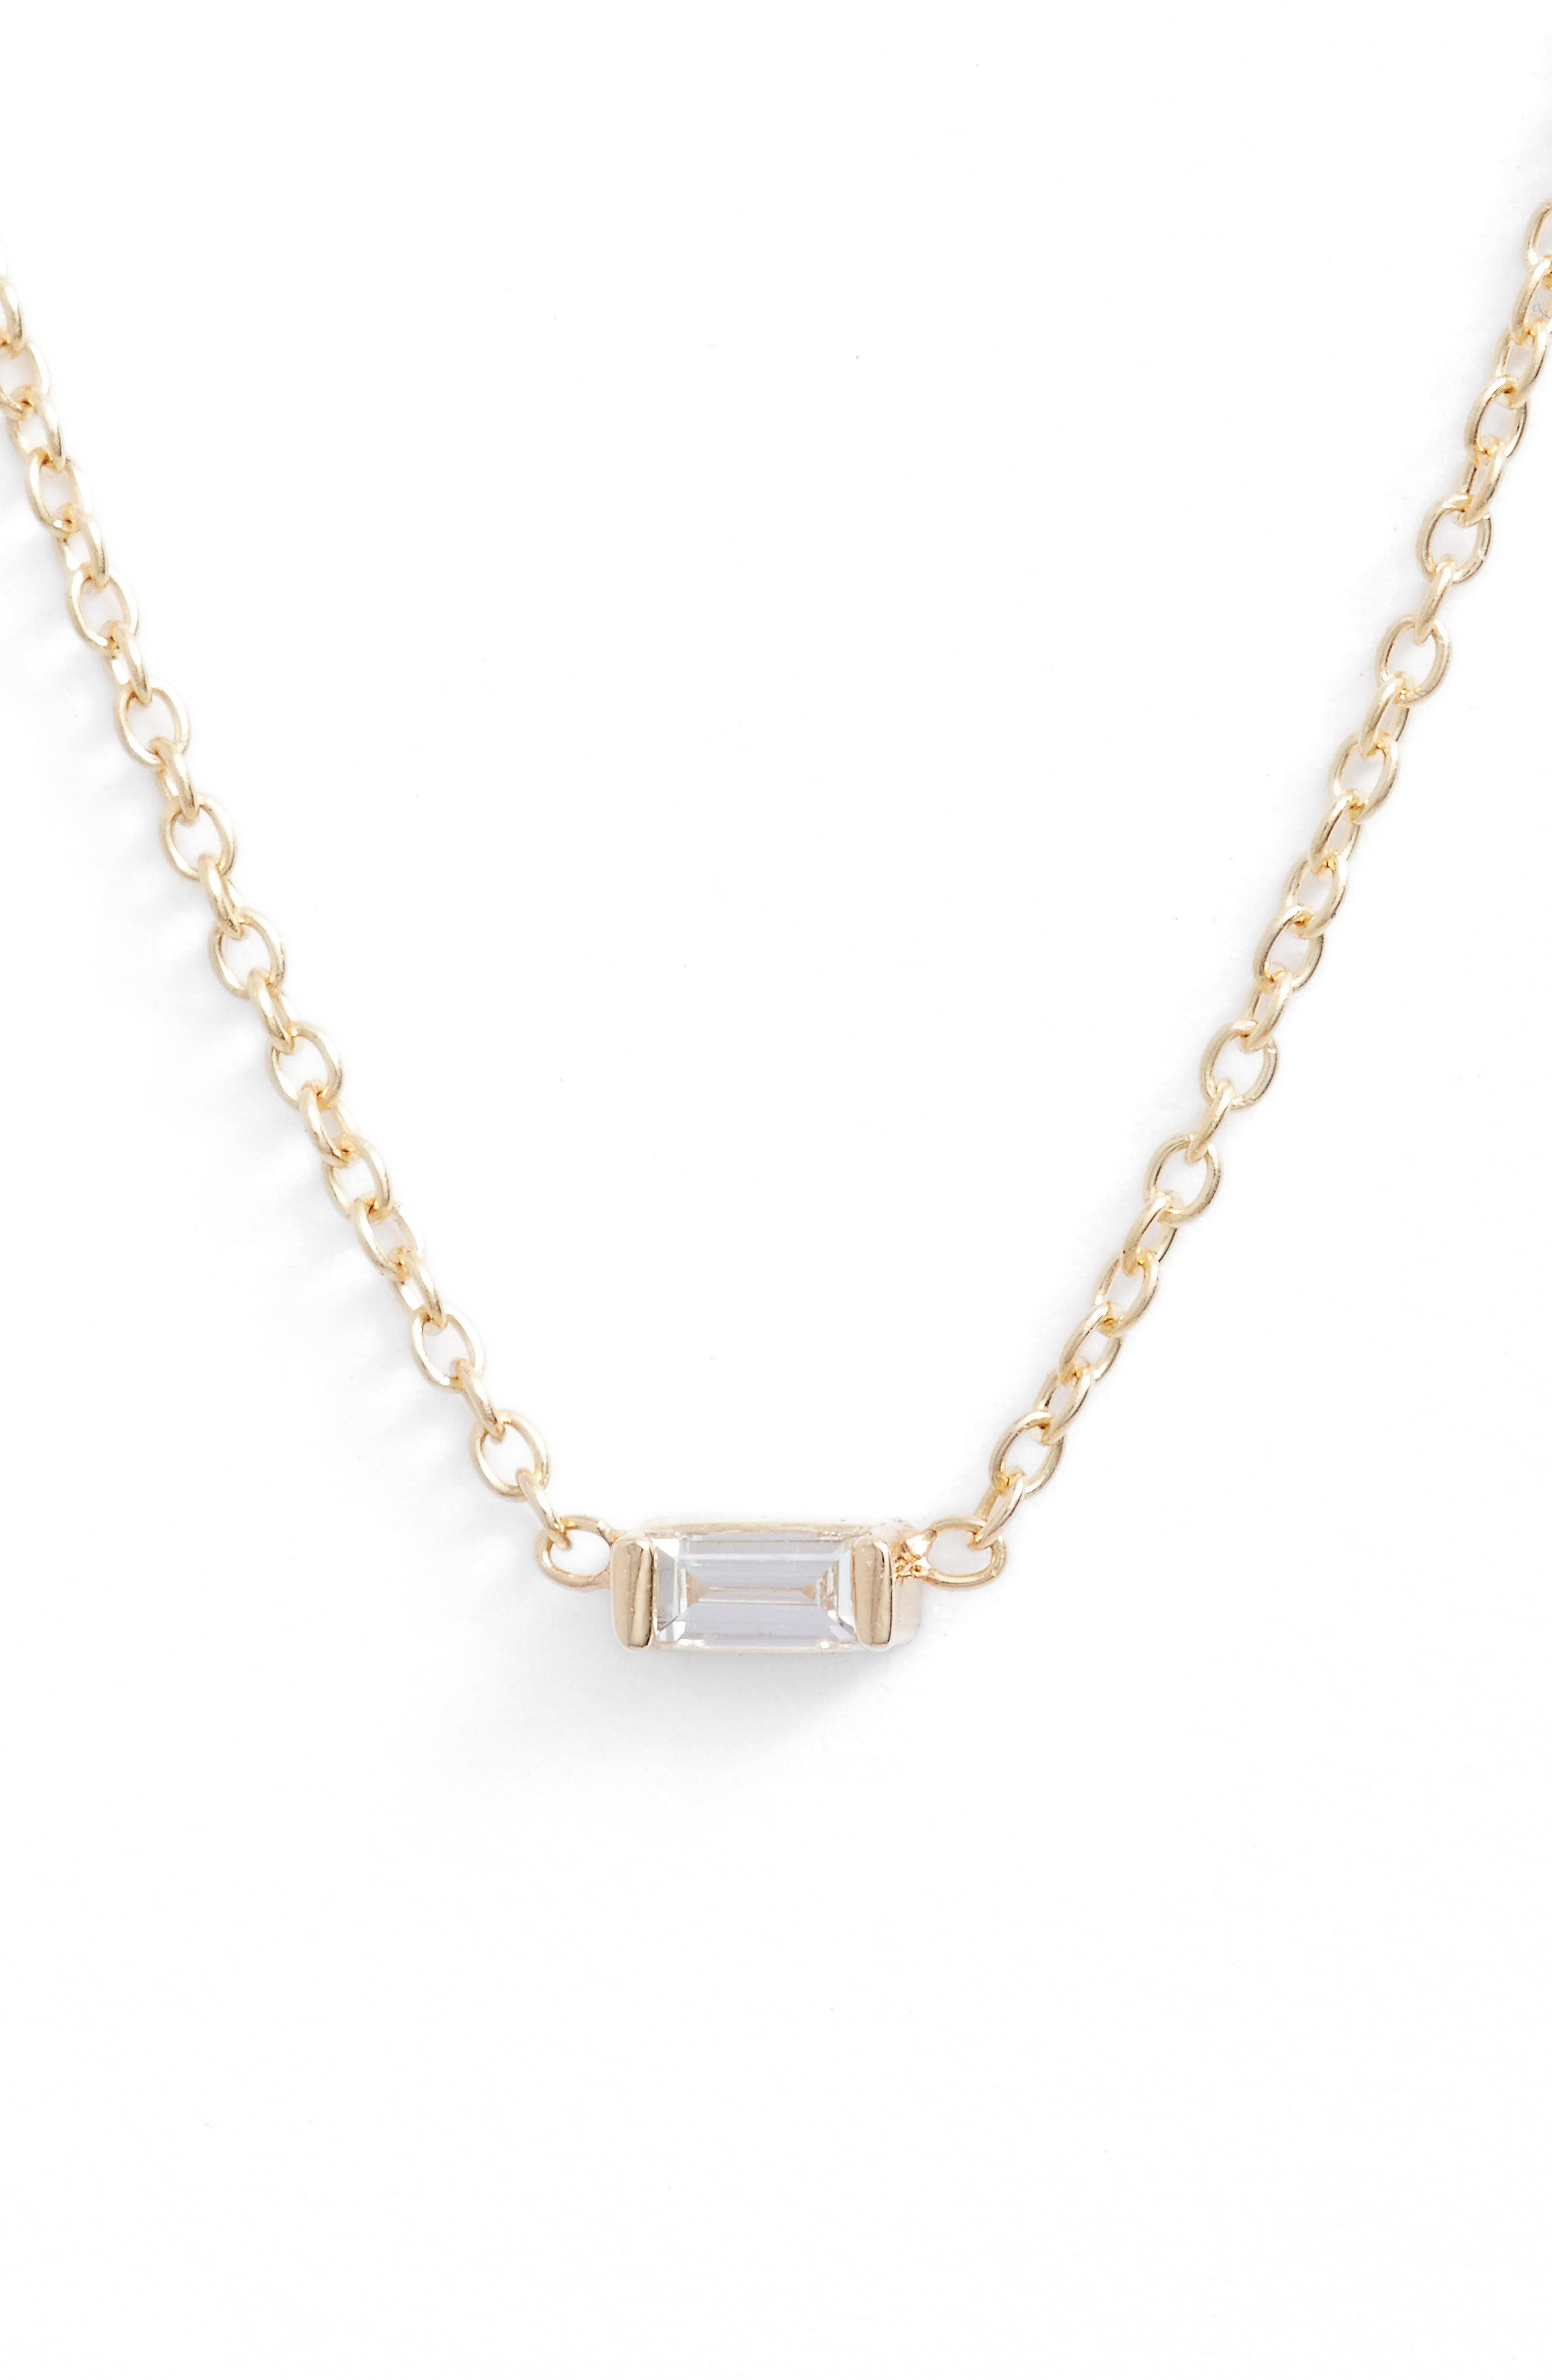 ZOË CHICCO Diamond Baguette Pendant Necklace